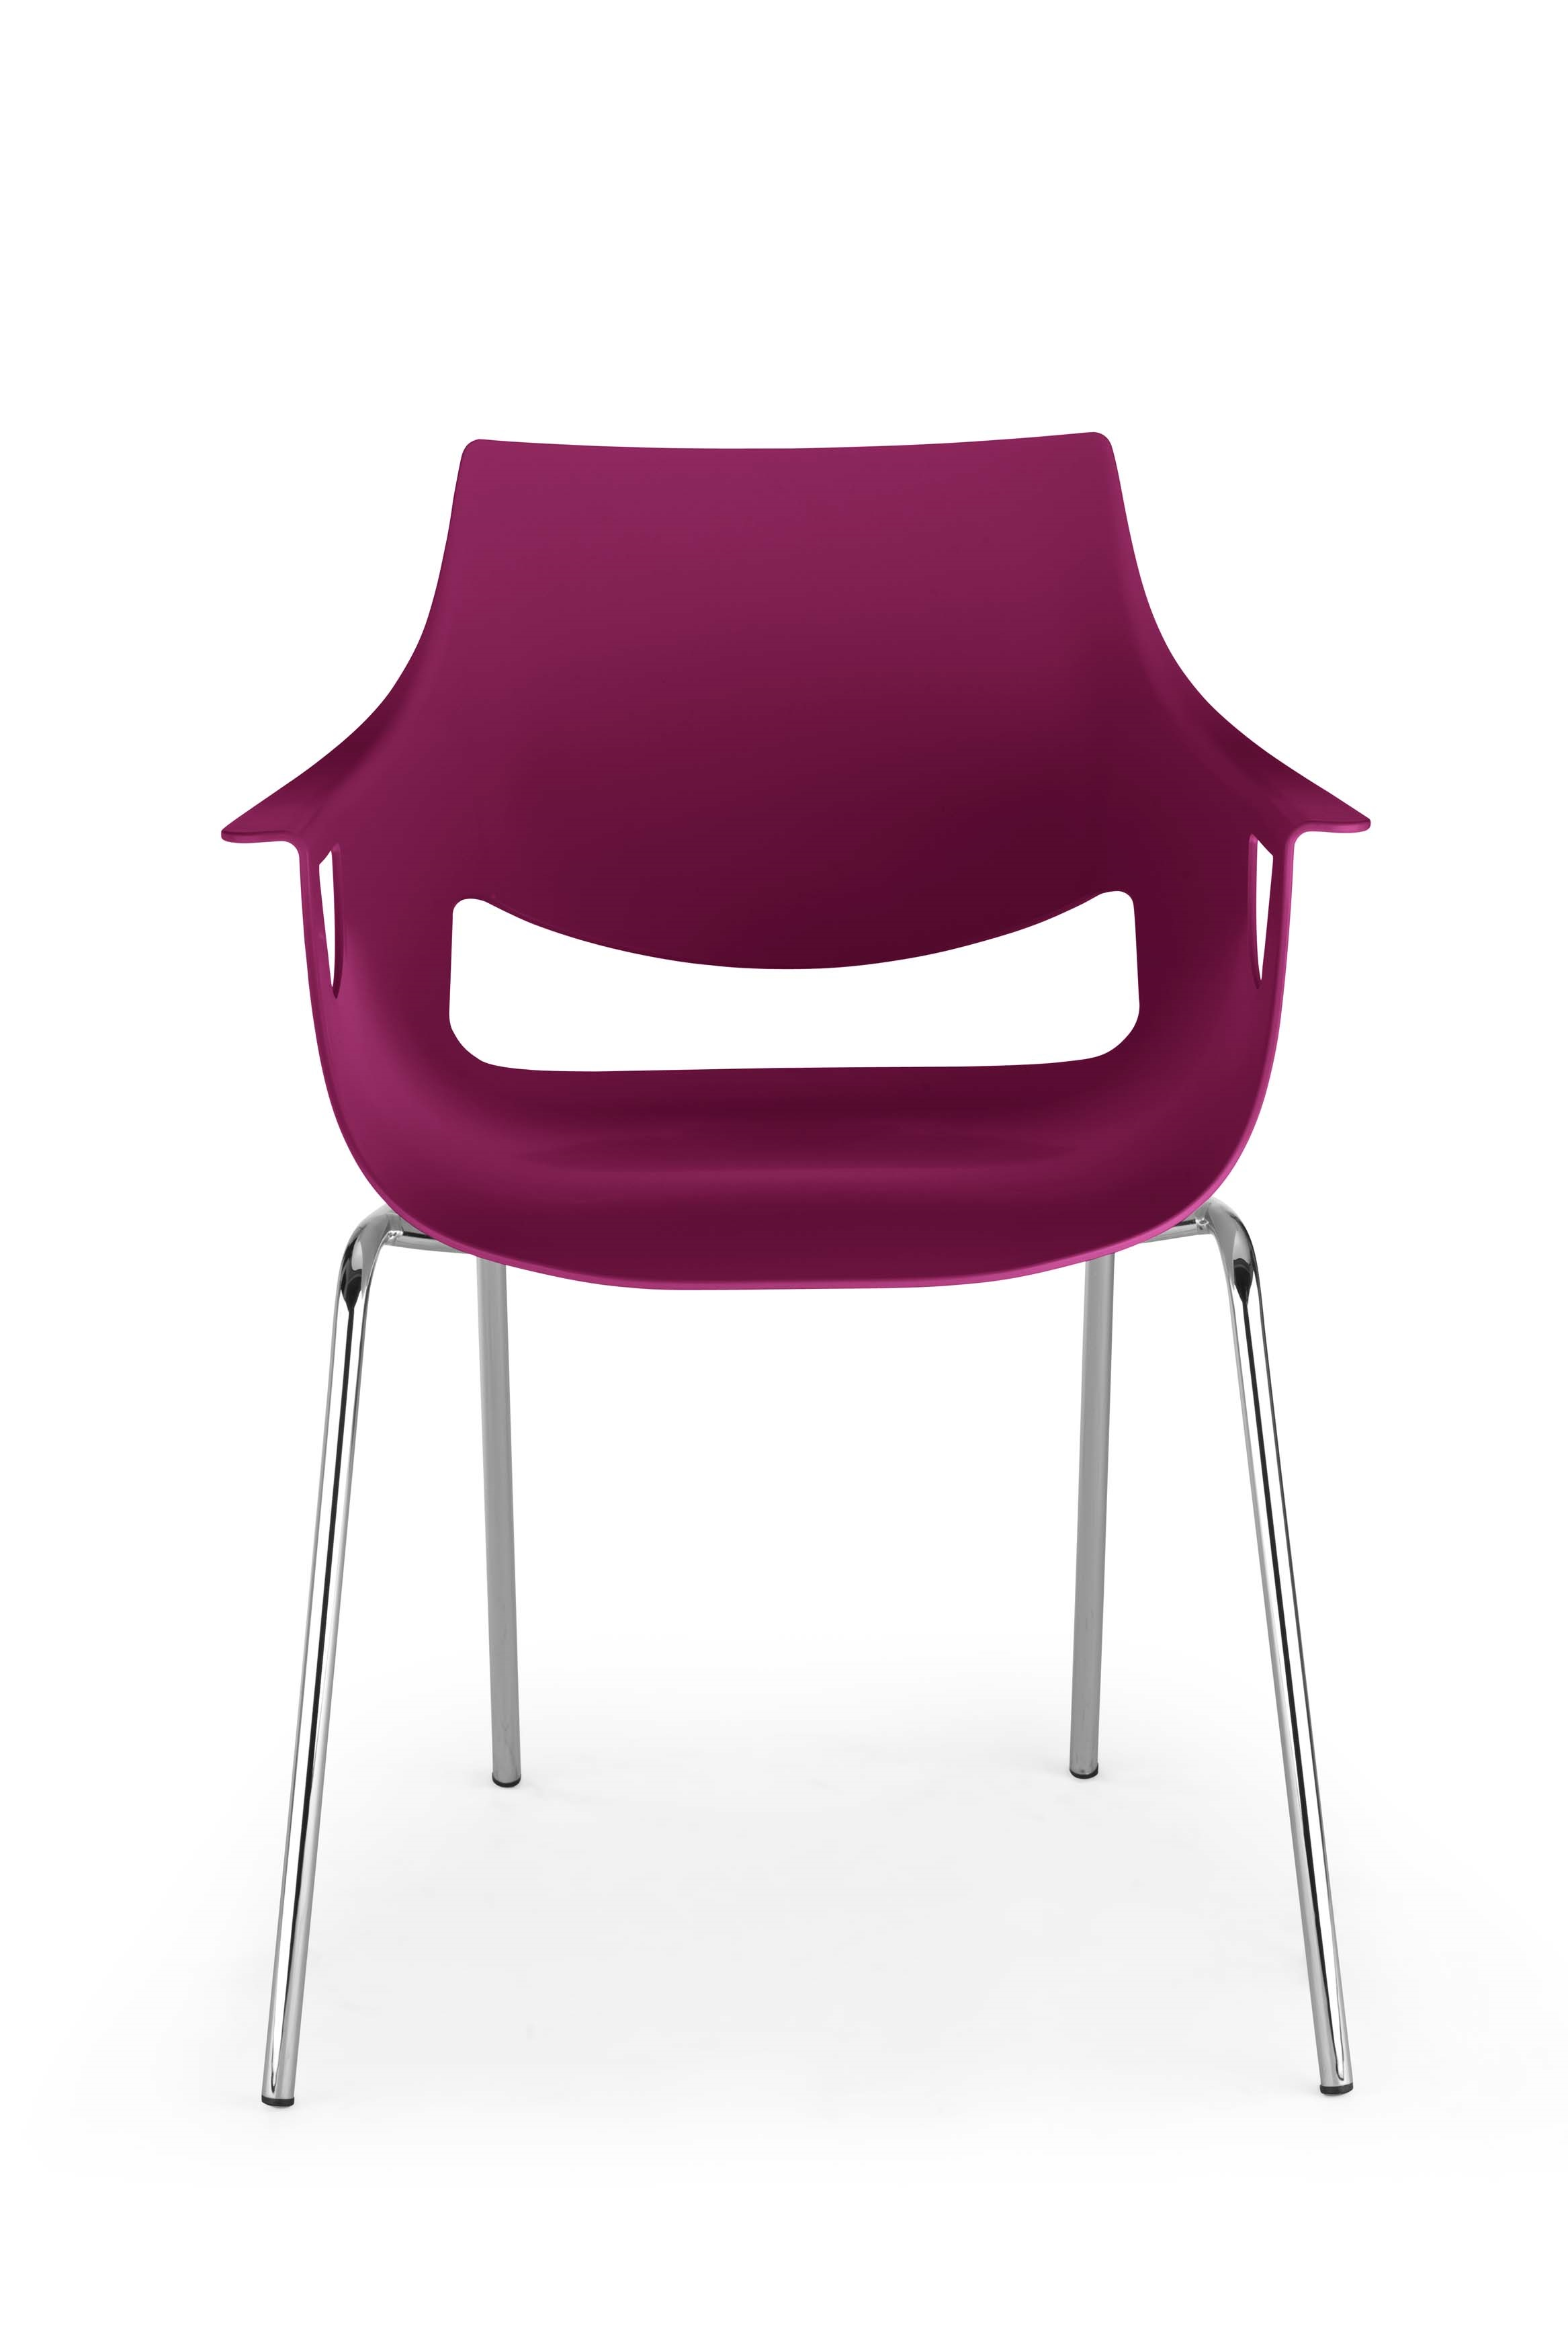 lime green bistro chairs spandex chair covers wholesale canada contemporary cafe in red white and